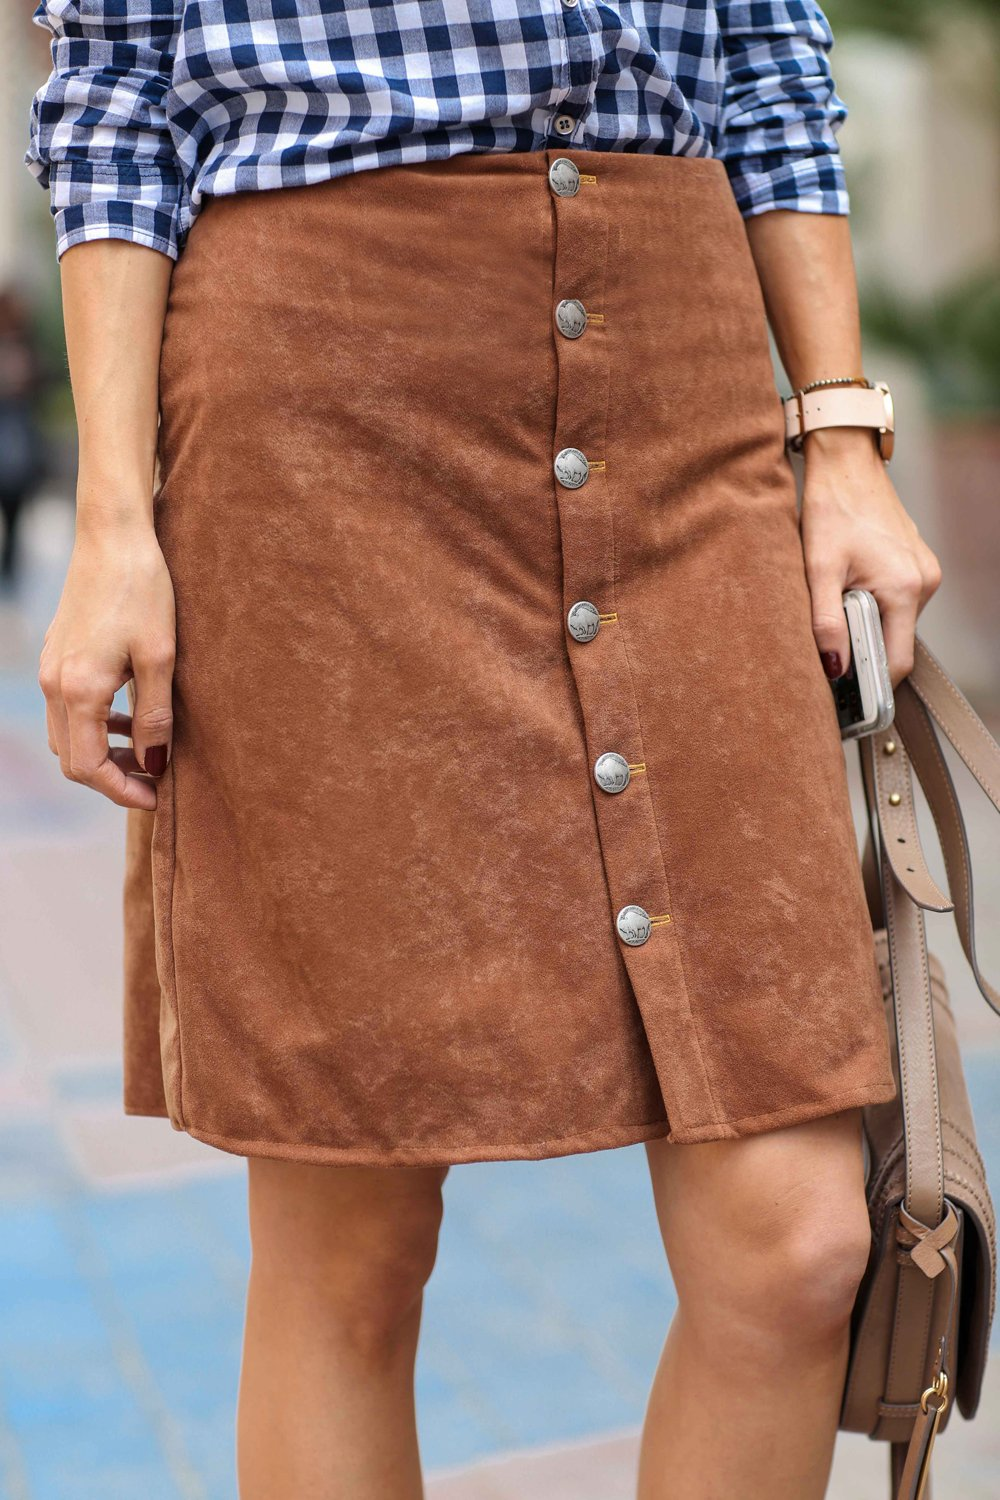 Merrick's Art Suede Skirt